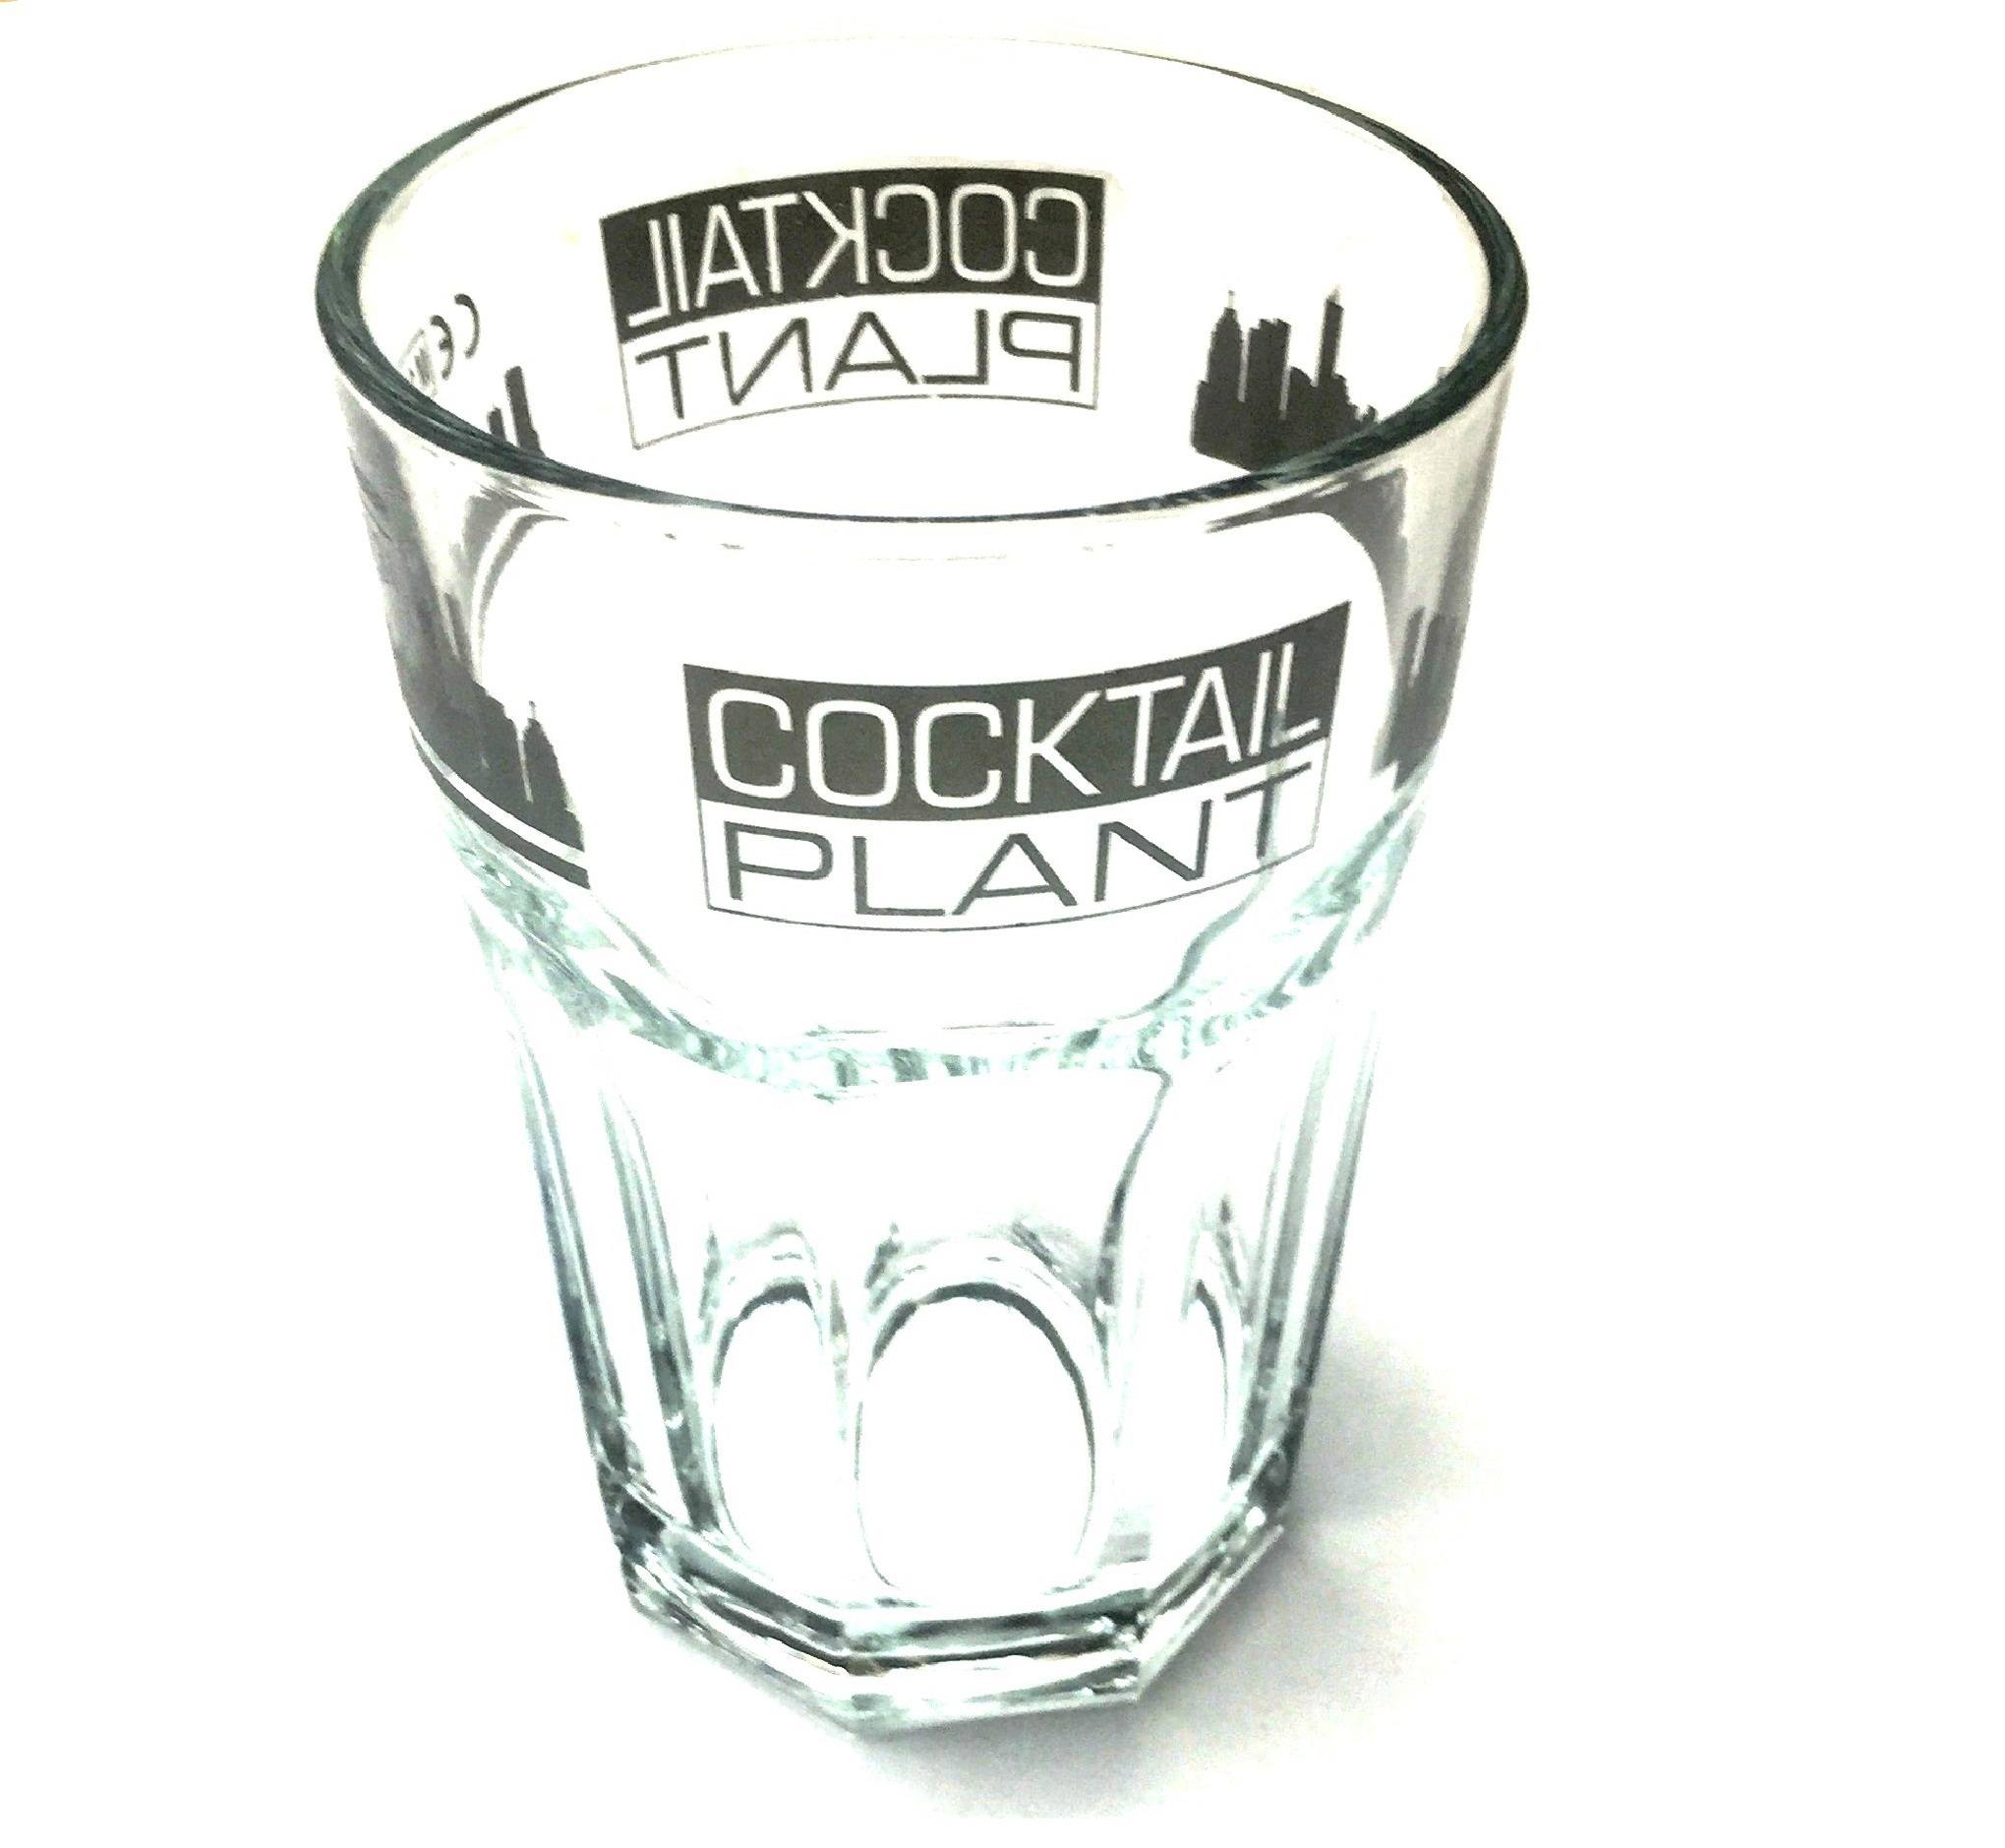 Cocktailgläser plant glas 34cl cocktailgläser